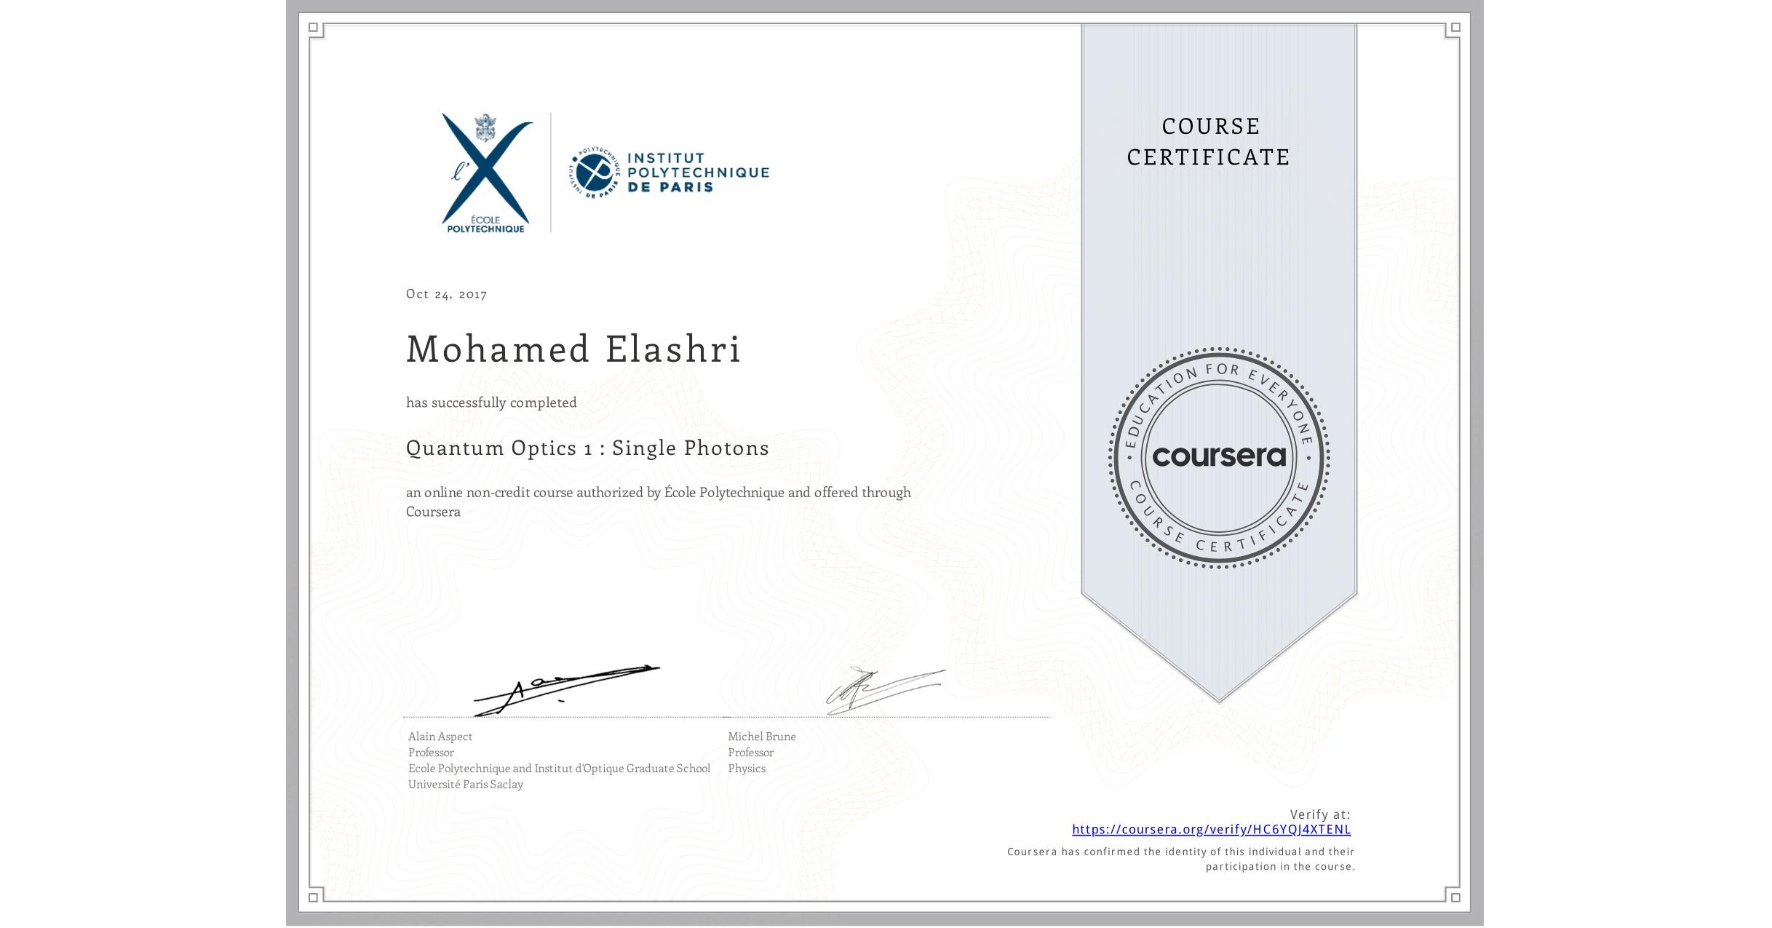 View certificate for Mohamed Elashri, Quantum Optics 1 : Single Photons, an online non-credit course authorized by École Polytechnique and offered through Coursera